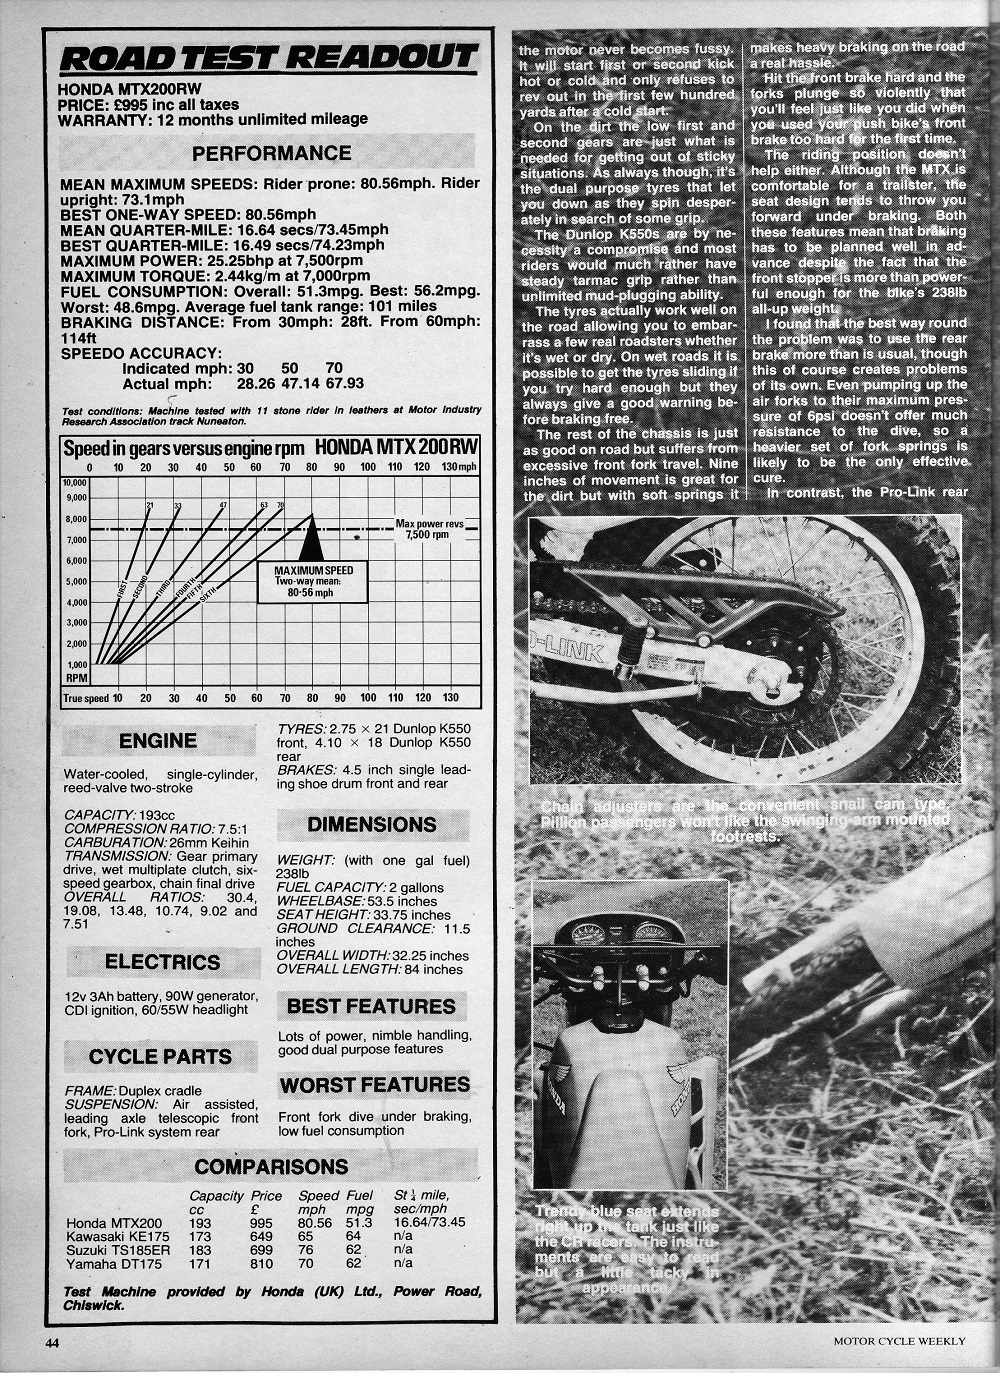 1983 Honda MTX200 road test.3.jpg